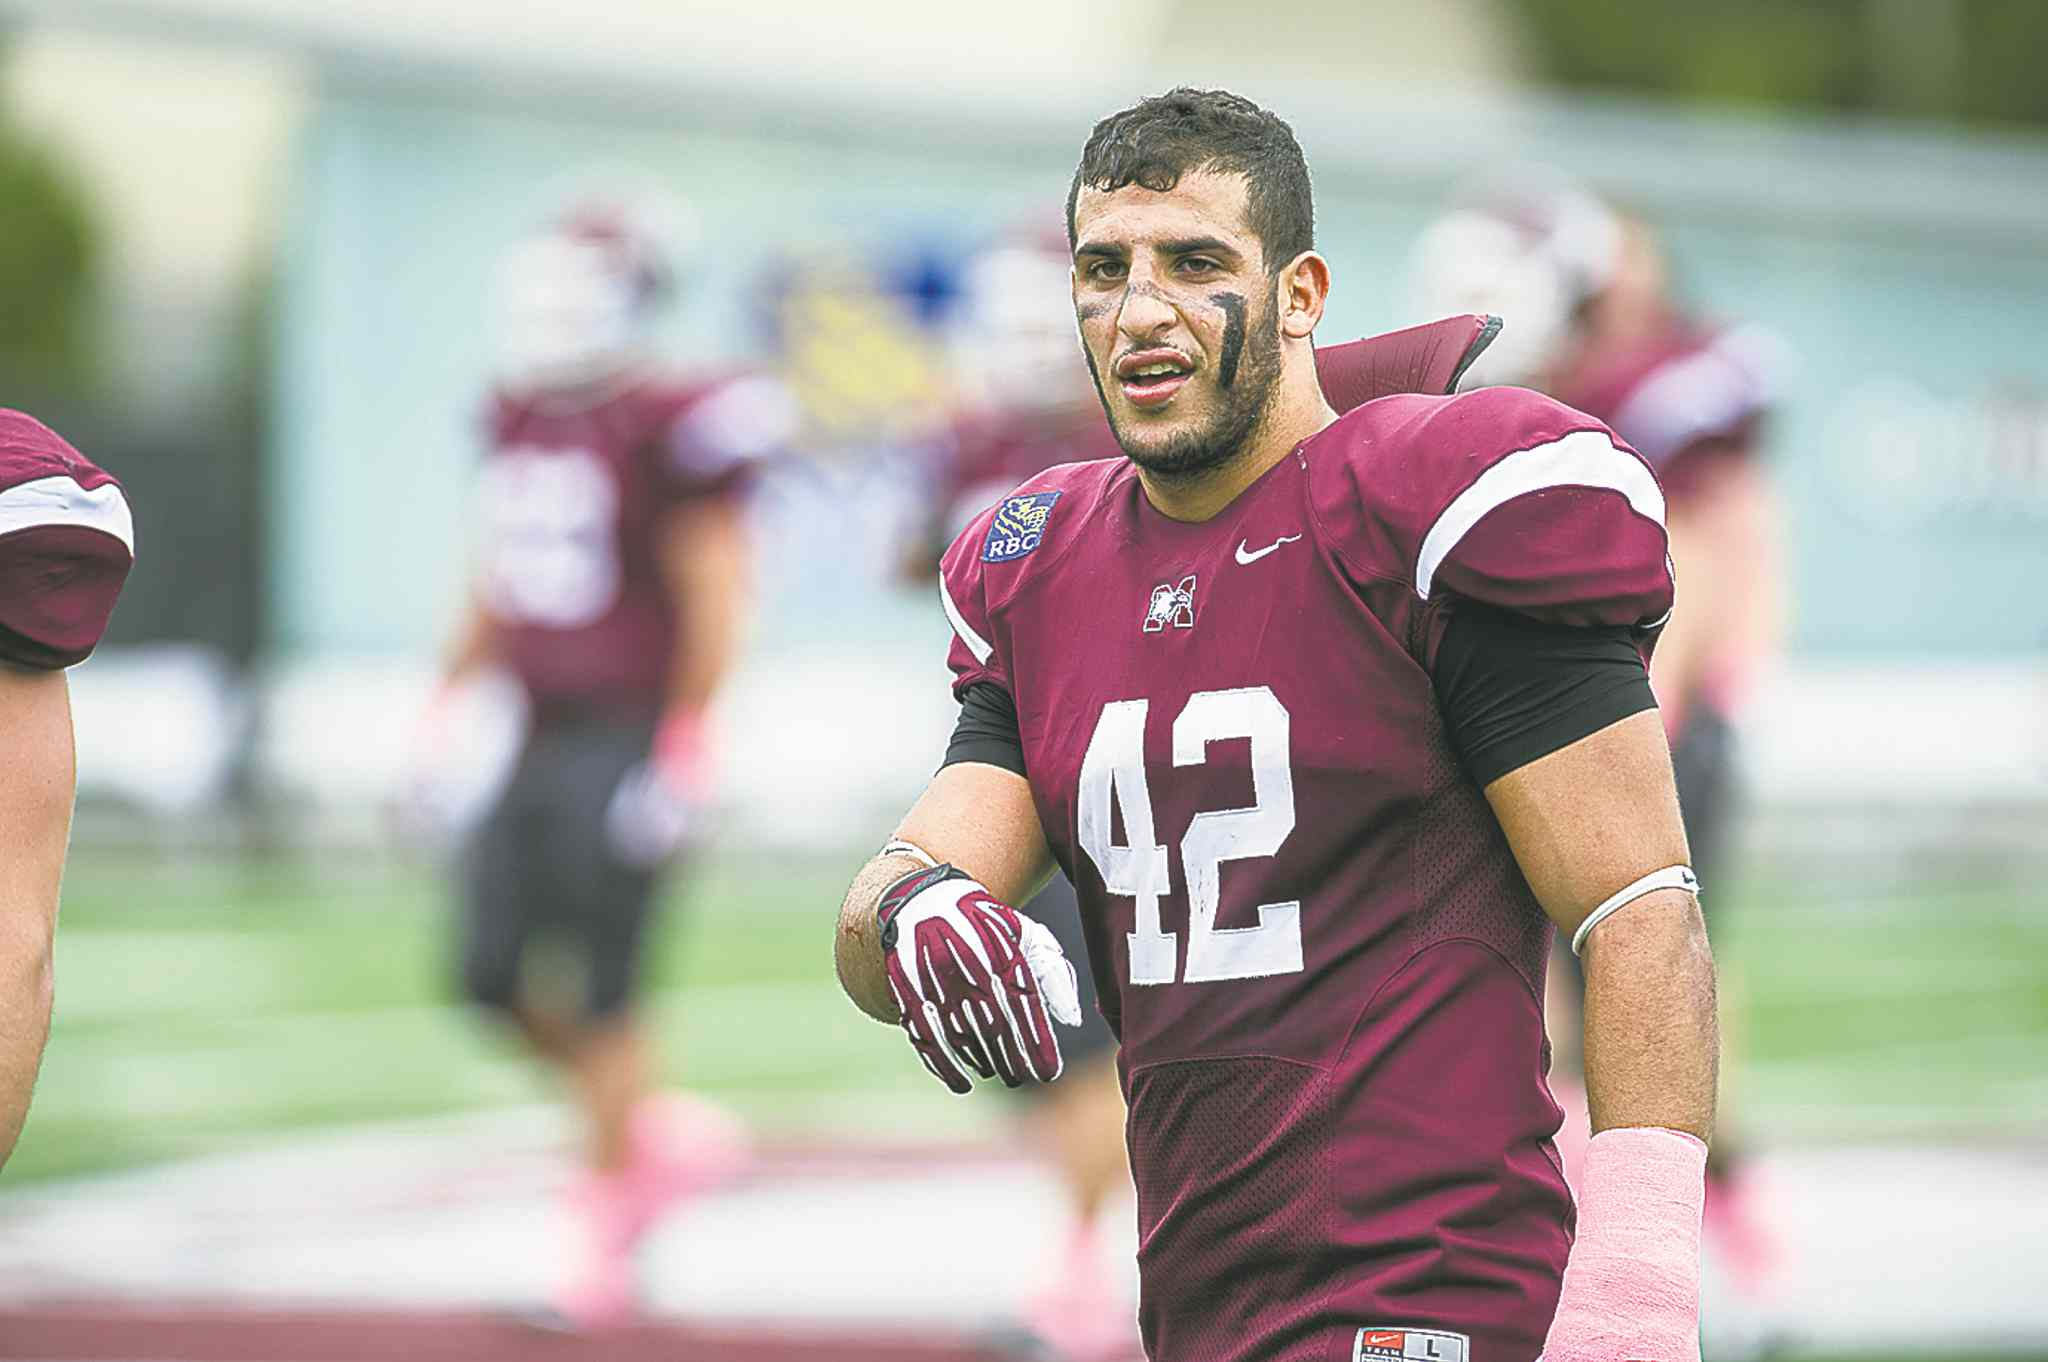 McMaster University linebacker Aram Eisho put pen to paper on Saturday, signing with the Bombers.